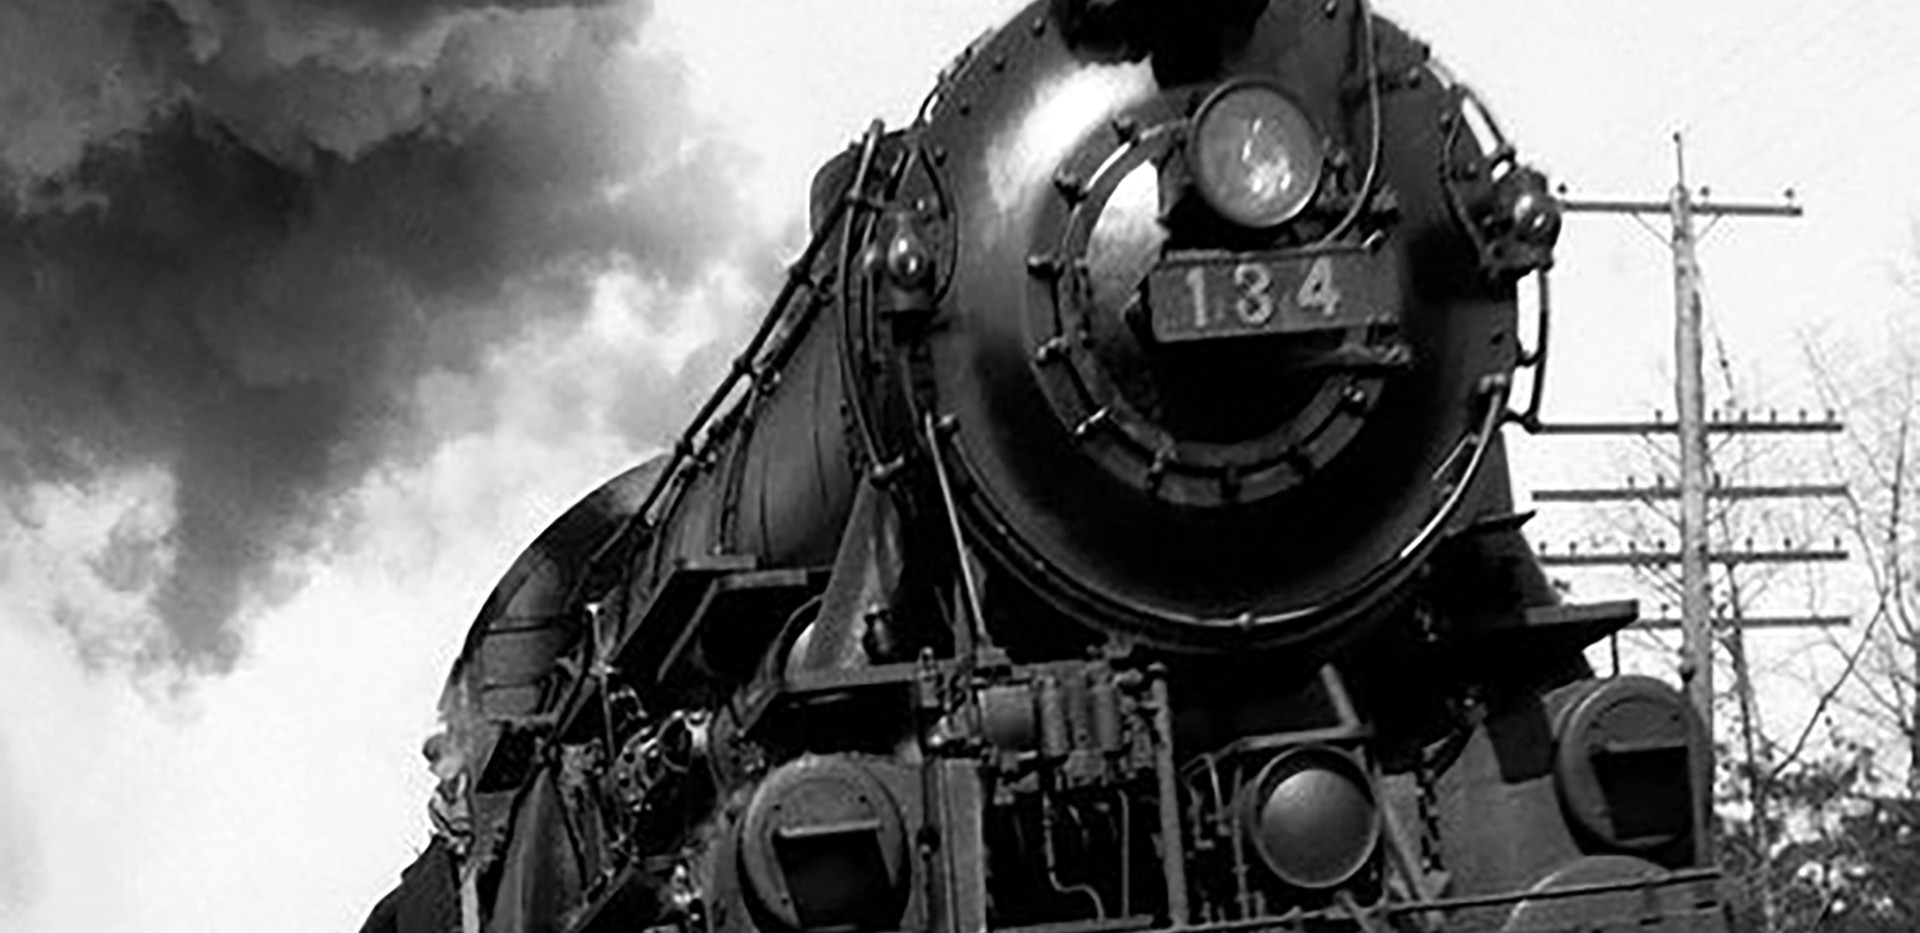 Once in America, immigrants used steam engine trains to travel to all parts of the country. Many Italians came to rejoin family already here. Celebrations were held as excited and tired travelers finally reached their destination in Fresno County. Their new lives had begun.